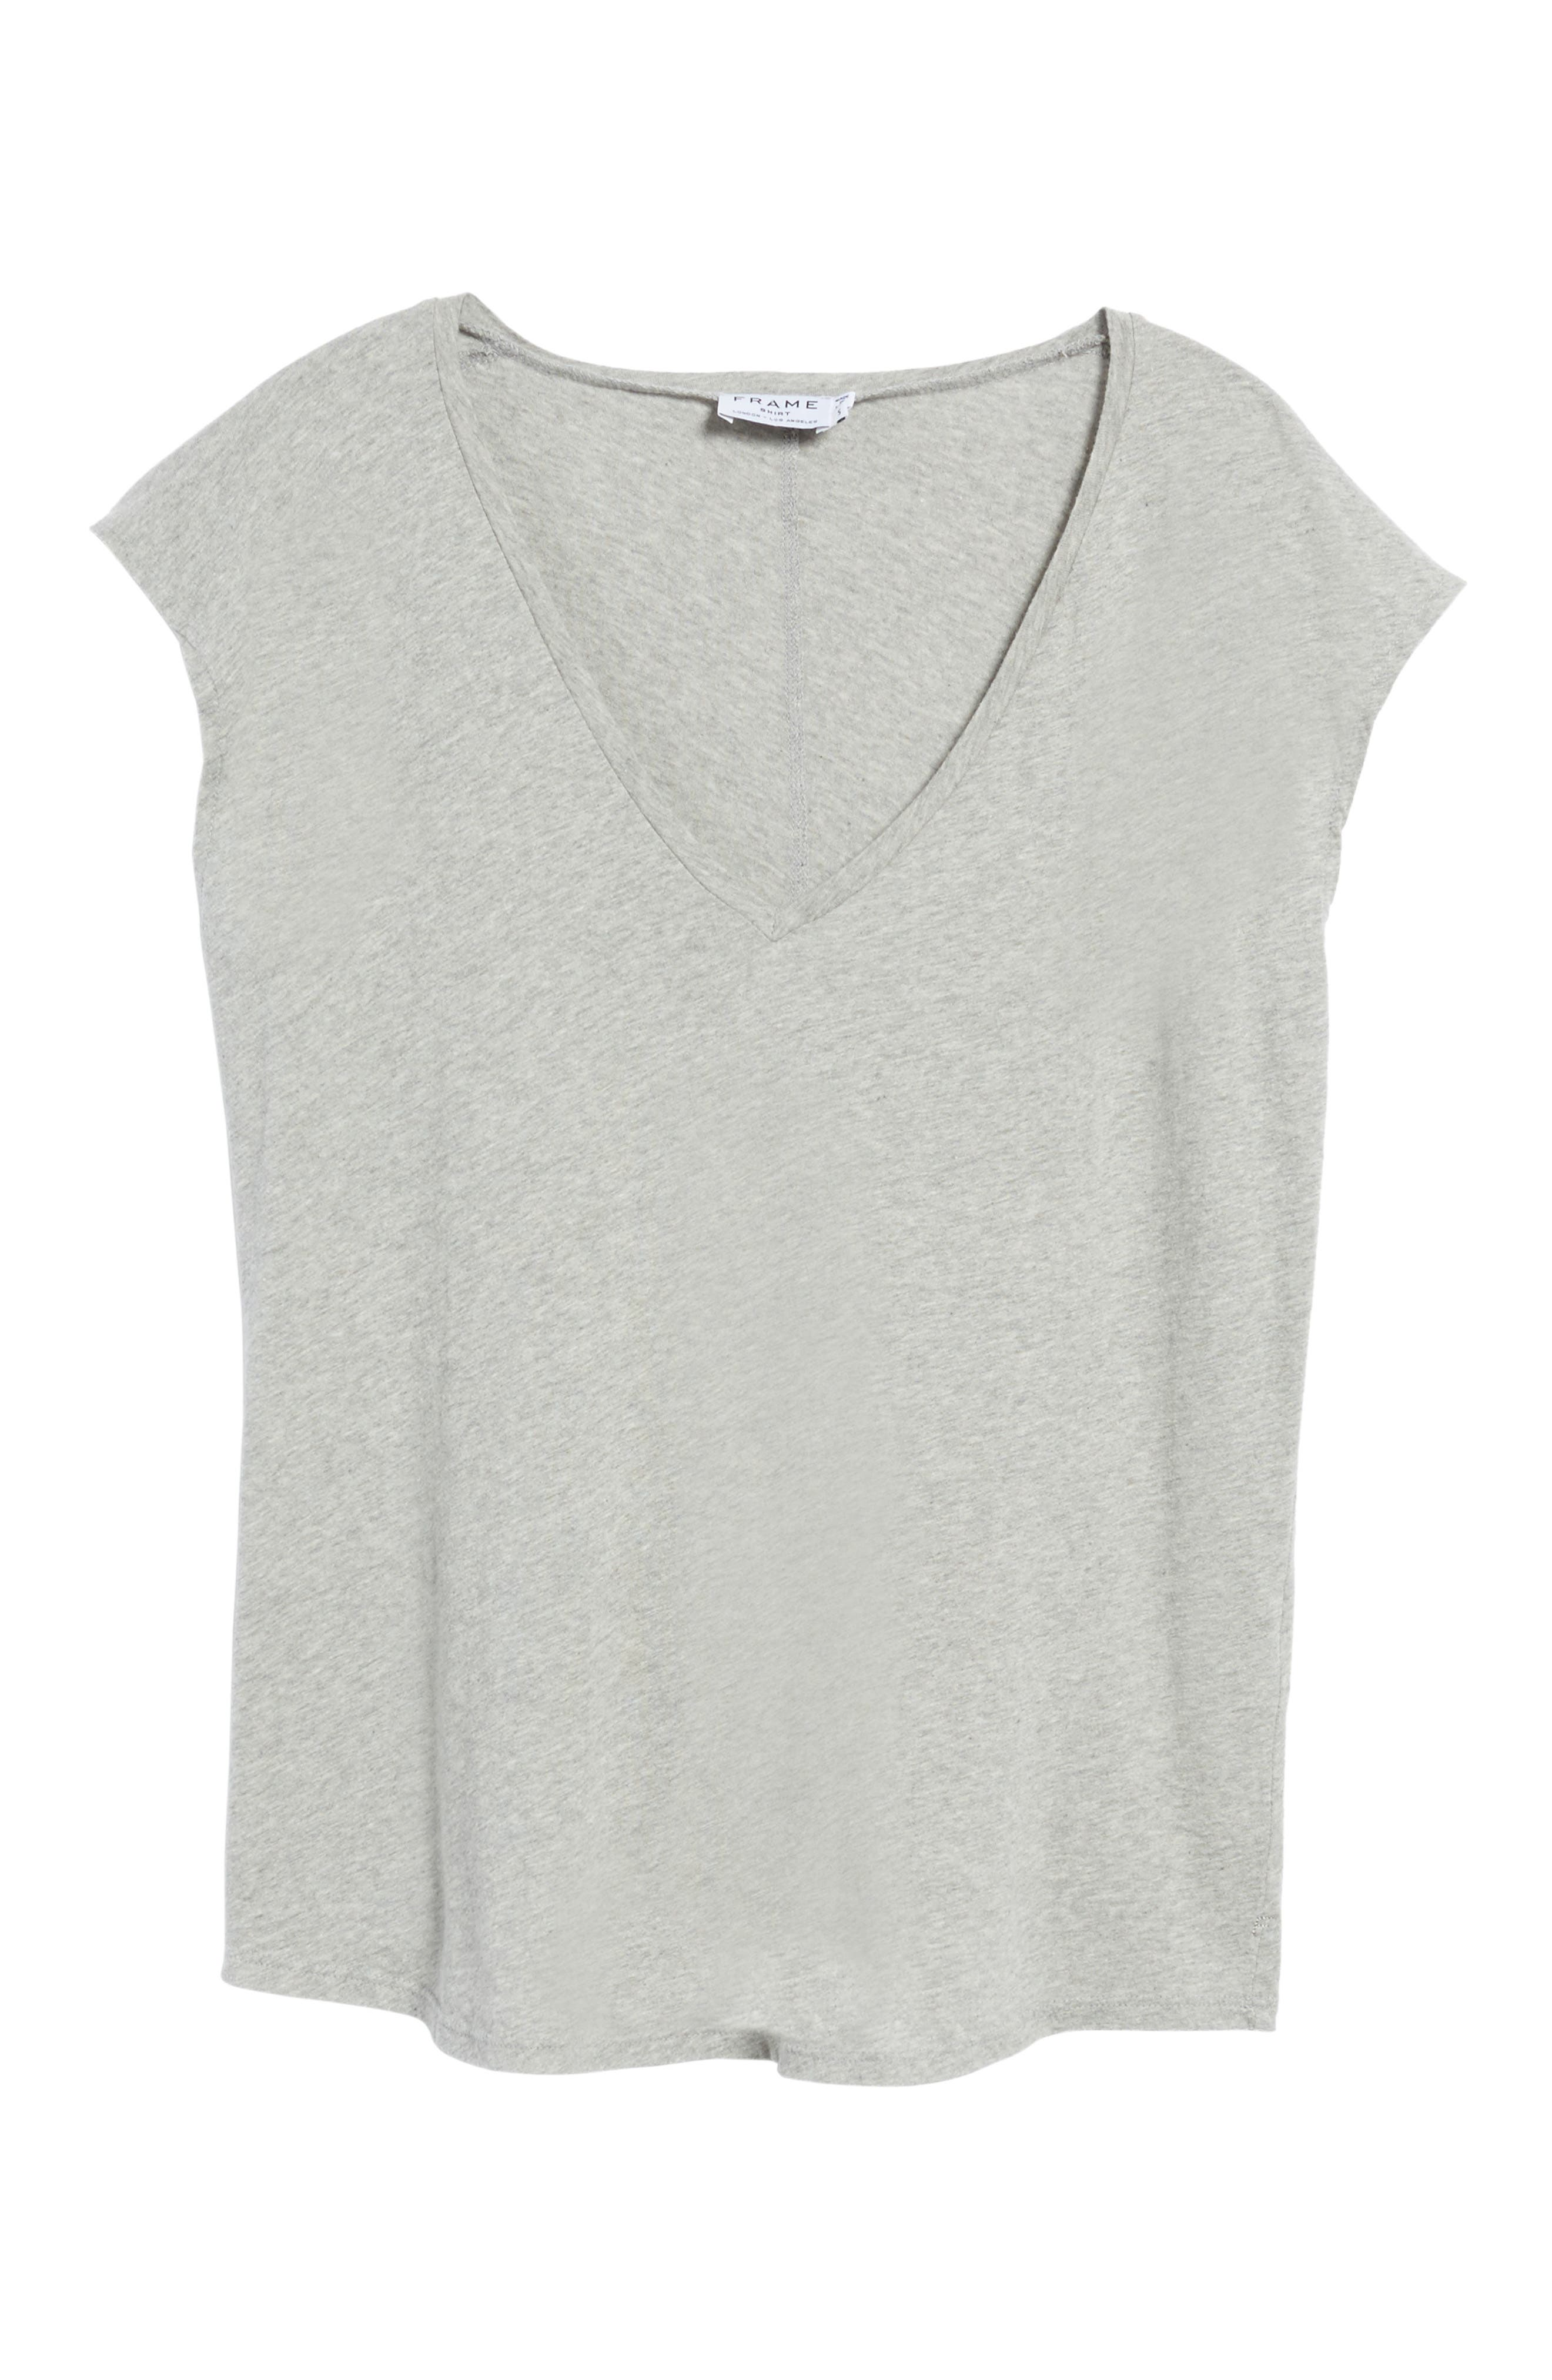 Cotton Jersey Tee,                             Main thumbnail 1, color,                             021